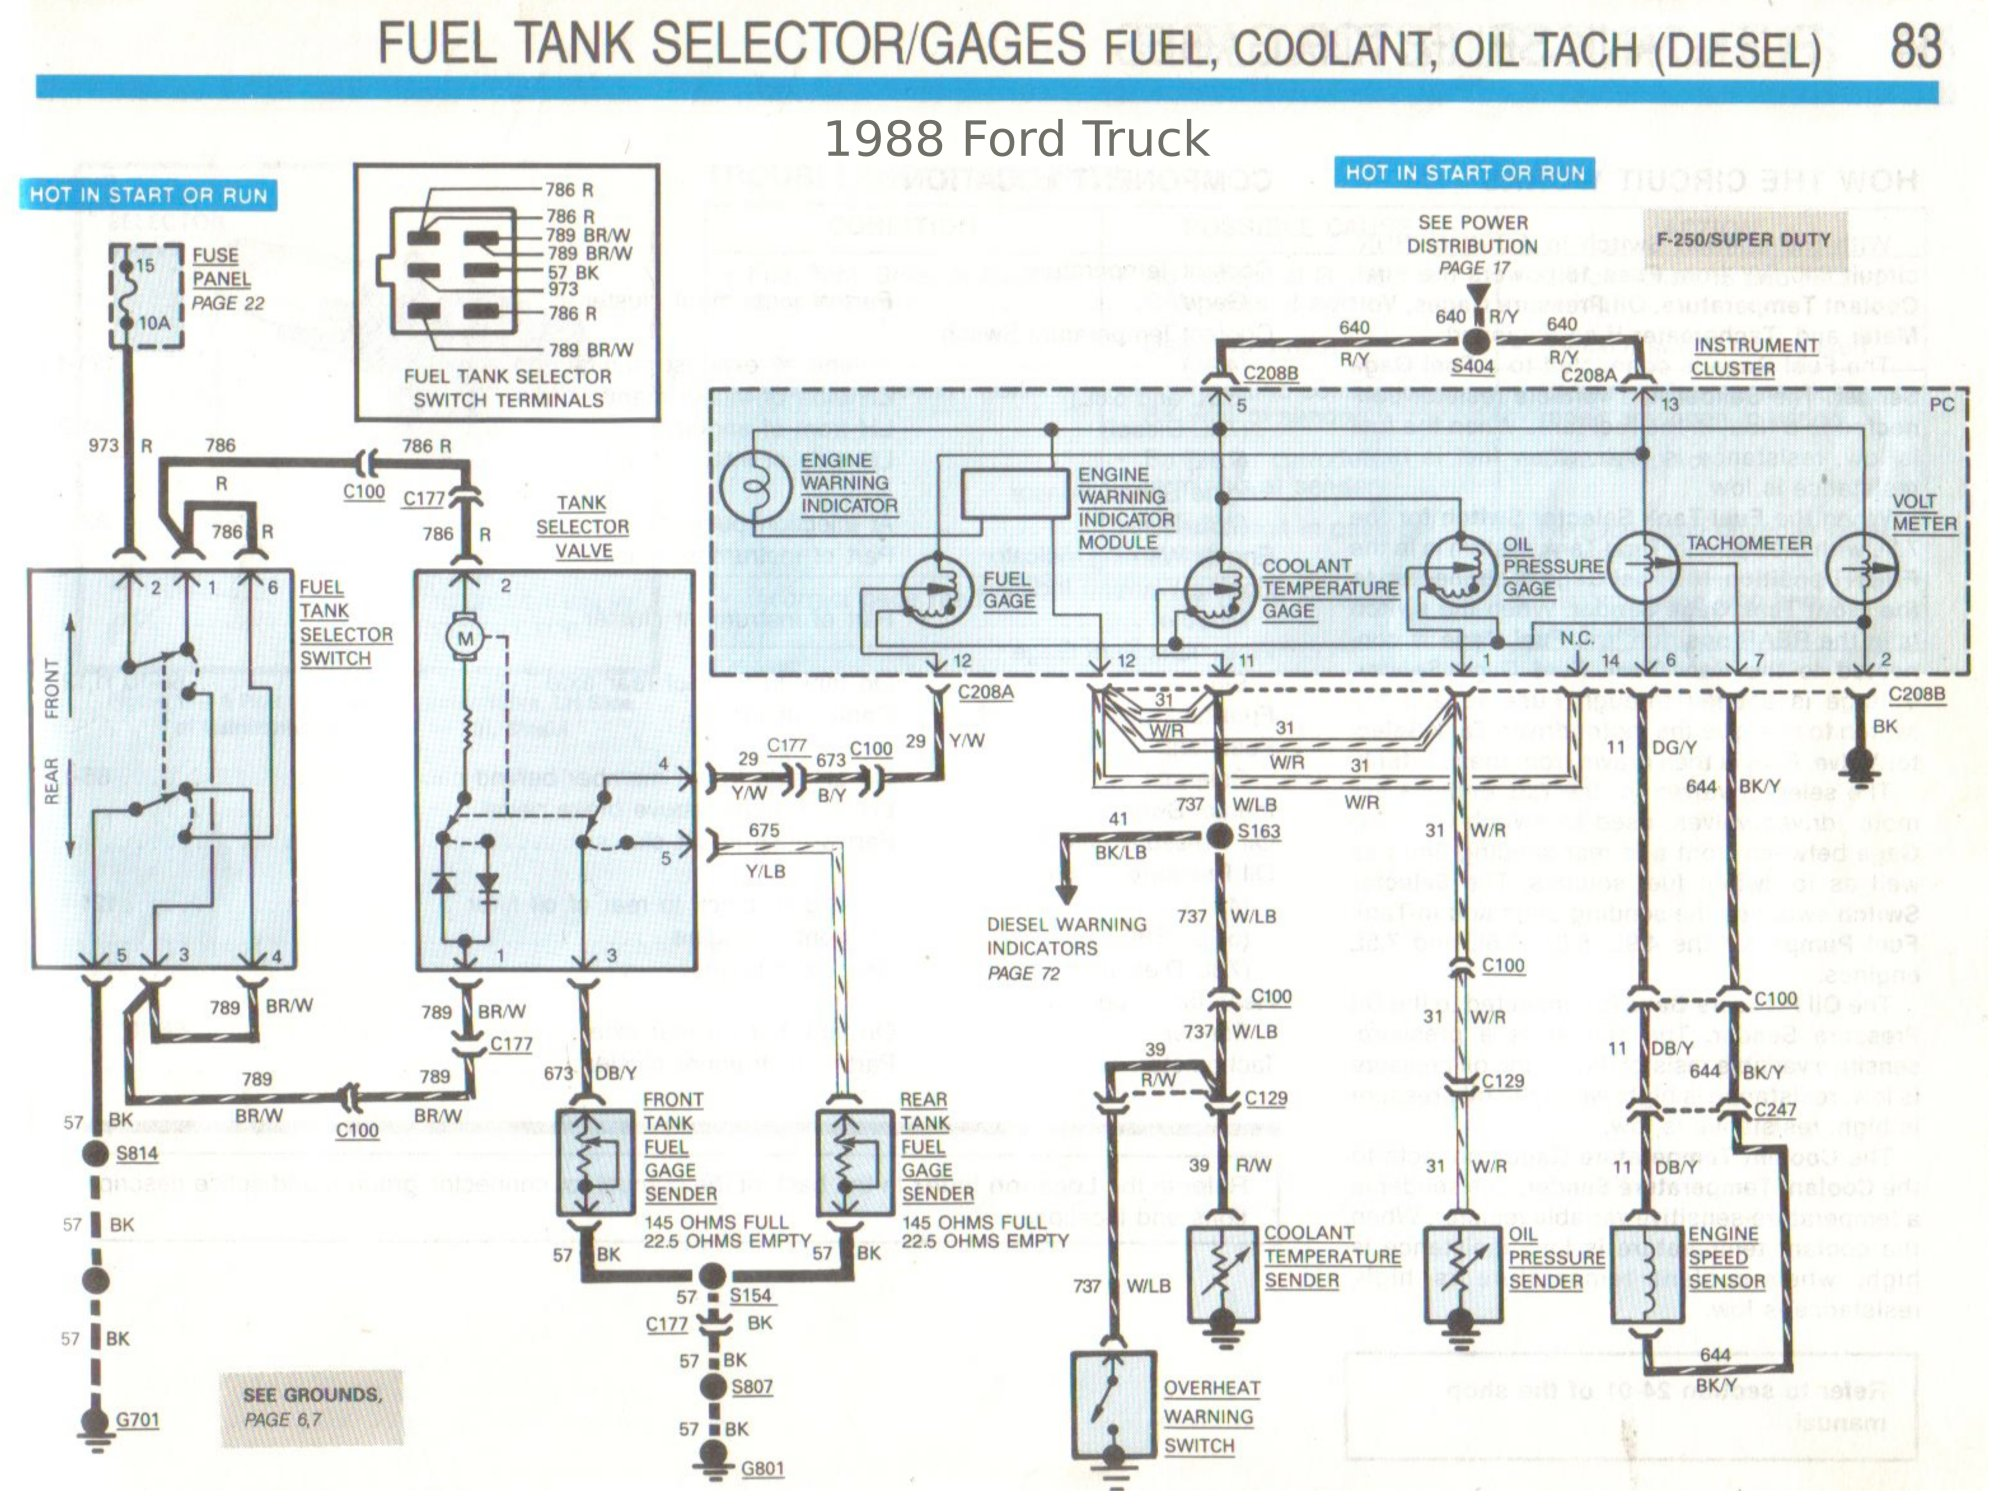 hight resolution of 85 ford f 250 460 wiring diagram auto electrical wiring diagram rh harvard edu co uk